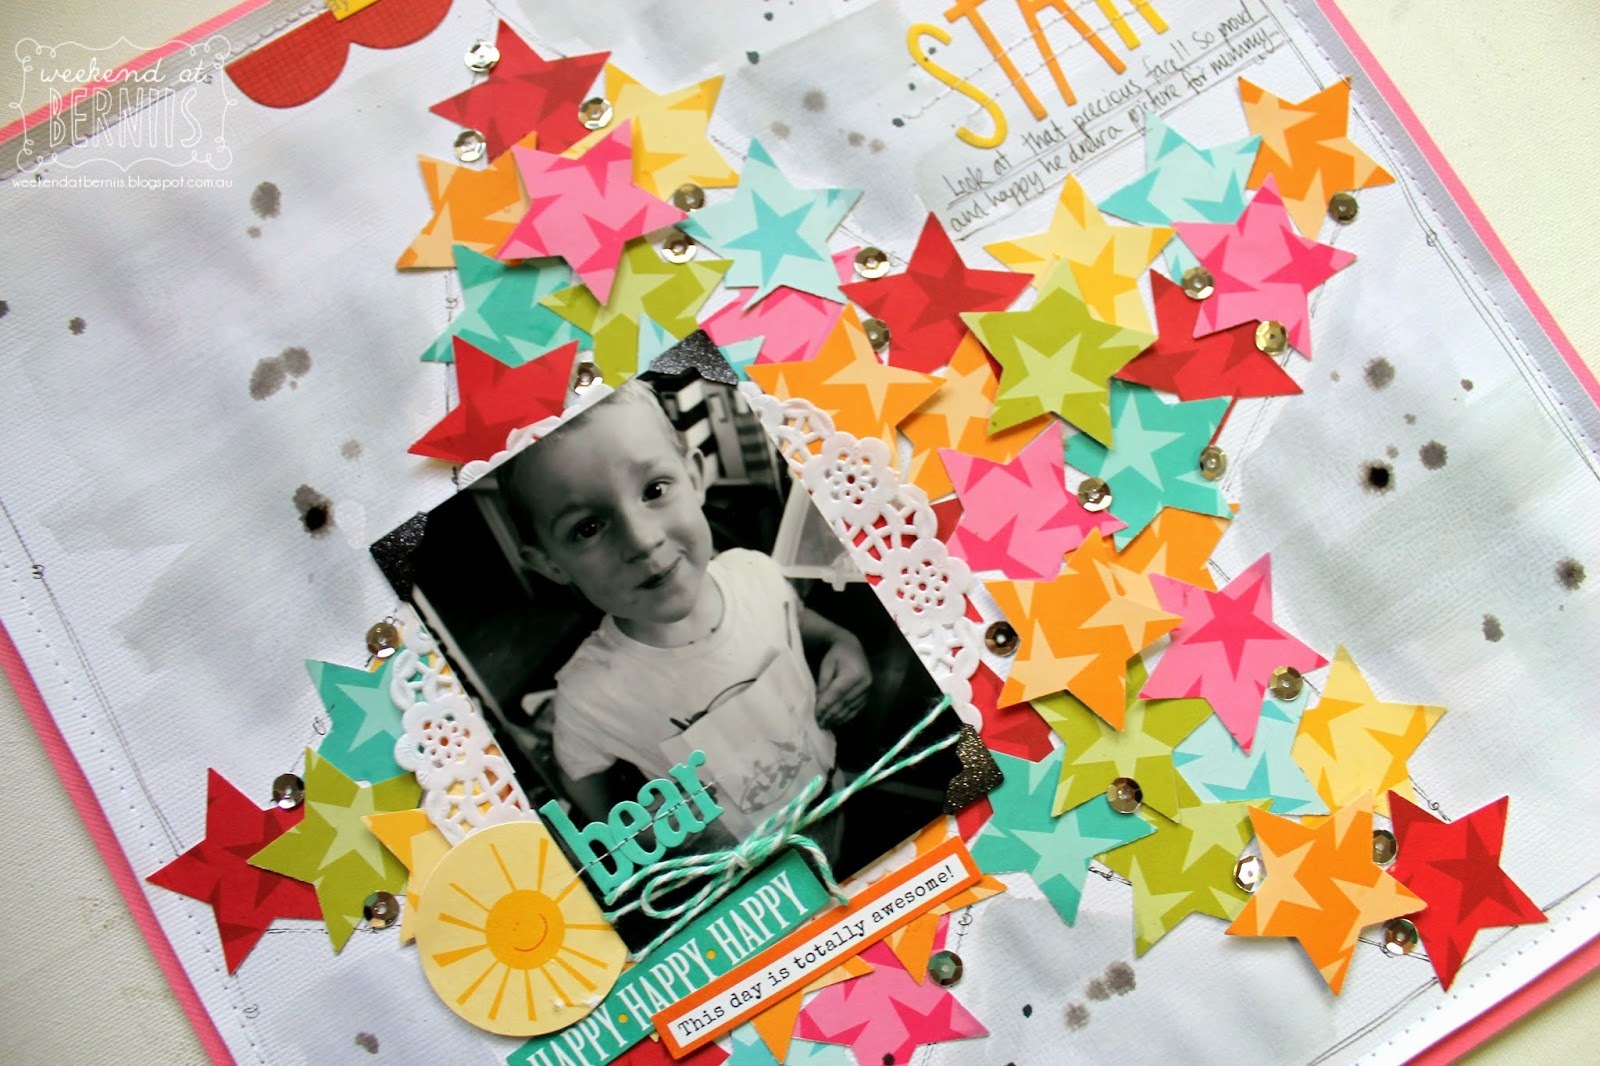 My star layout by Bernii Miller using Bella Blvd papers.